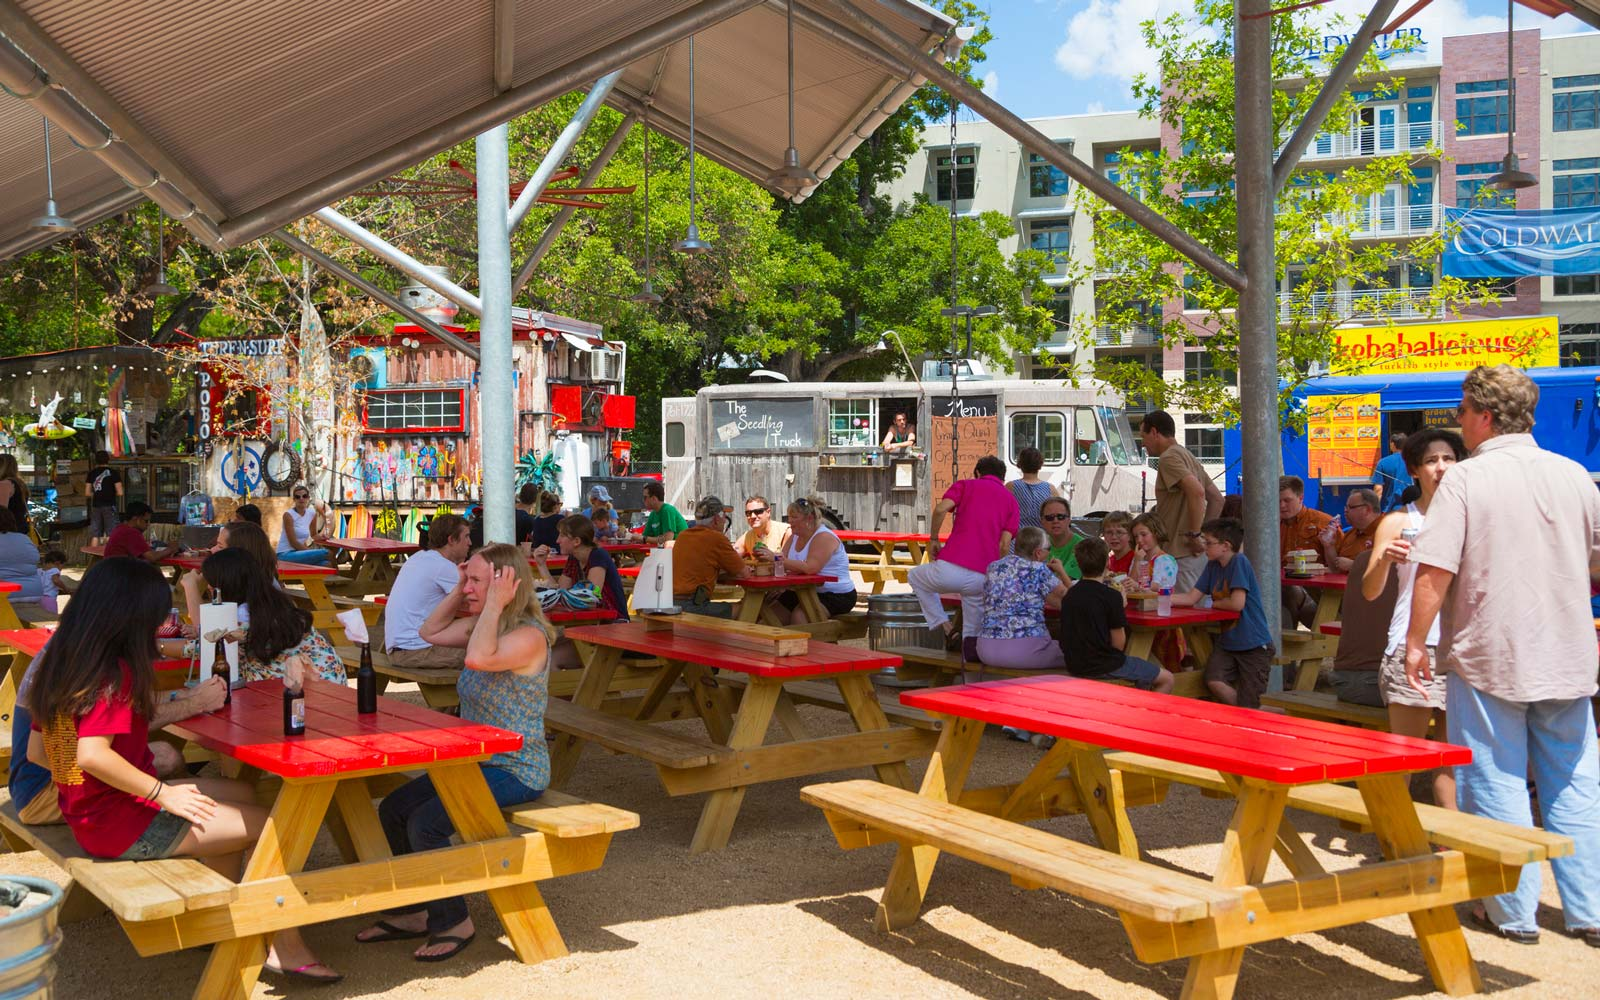 Barton Springs Picnic is a area for food trucks or carts on Barton Springs Road, in Austin, Texas.